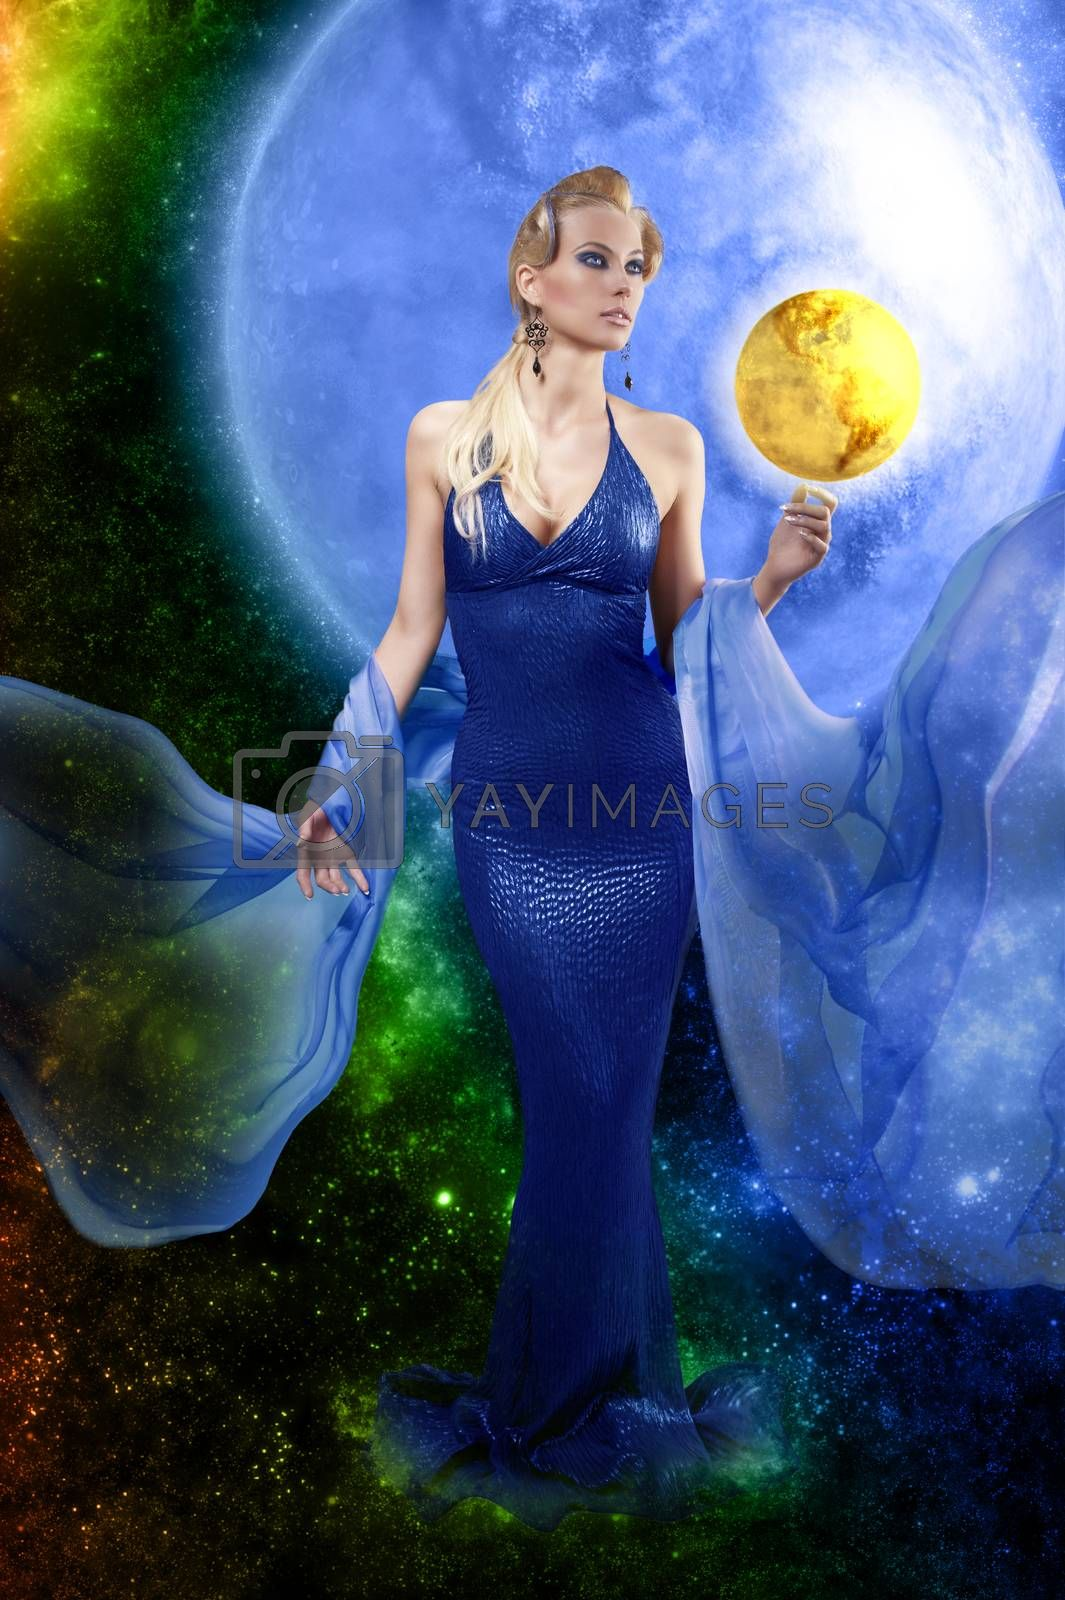 Royalty free image of E.T. woman with golden planet by fotoCD